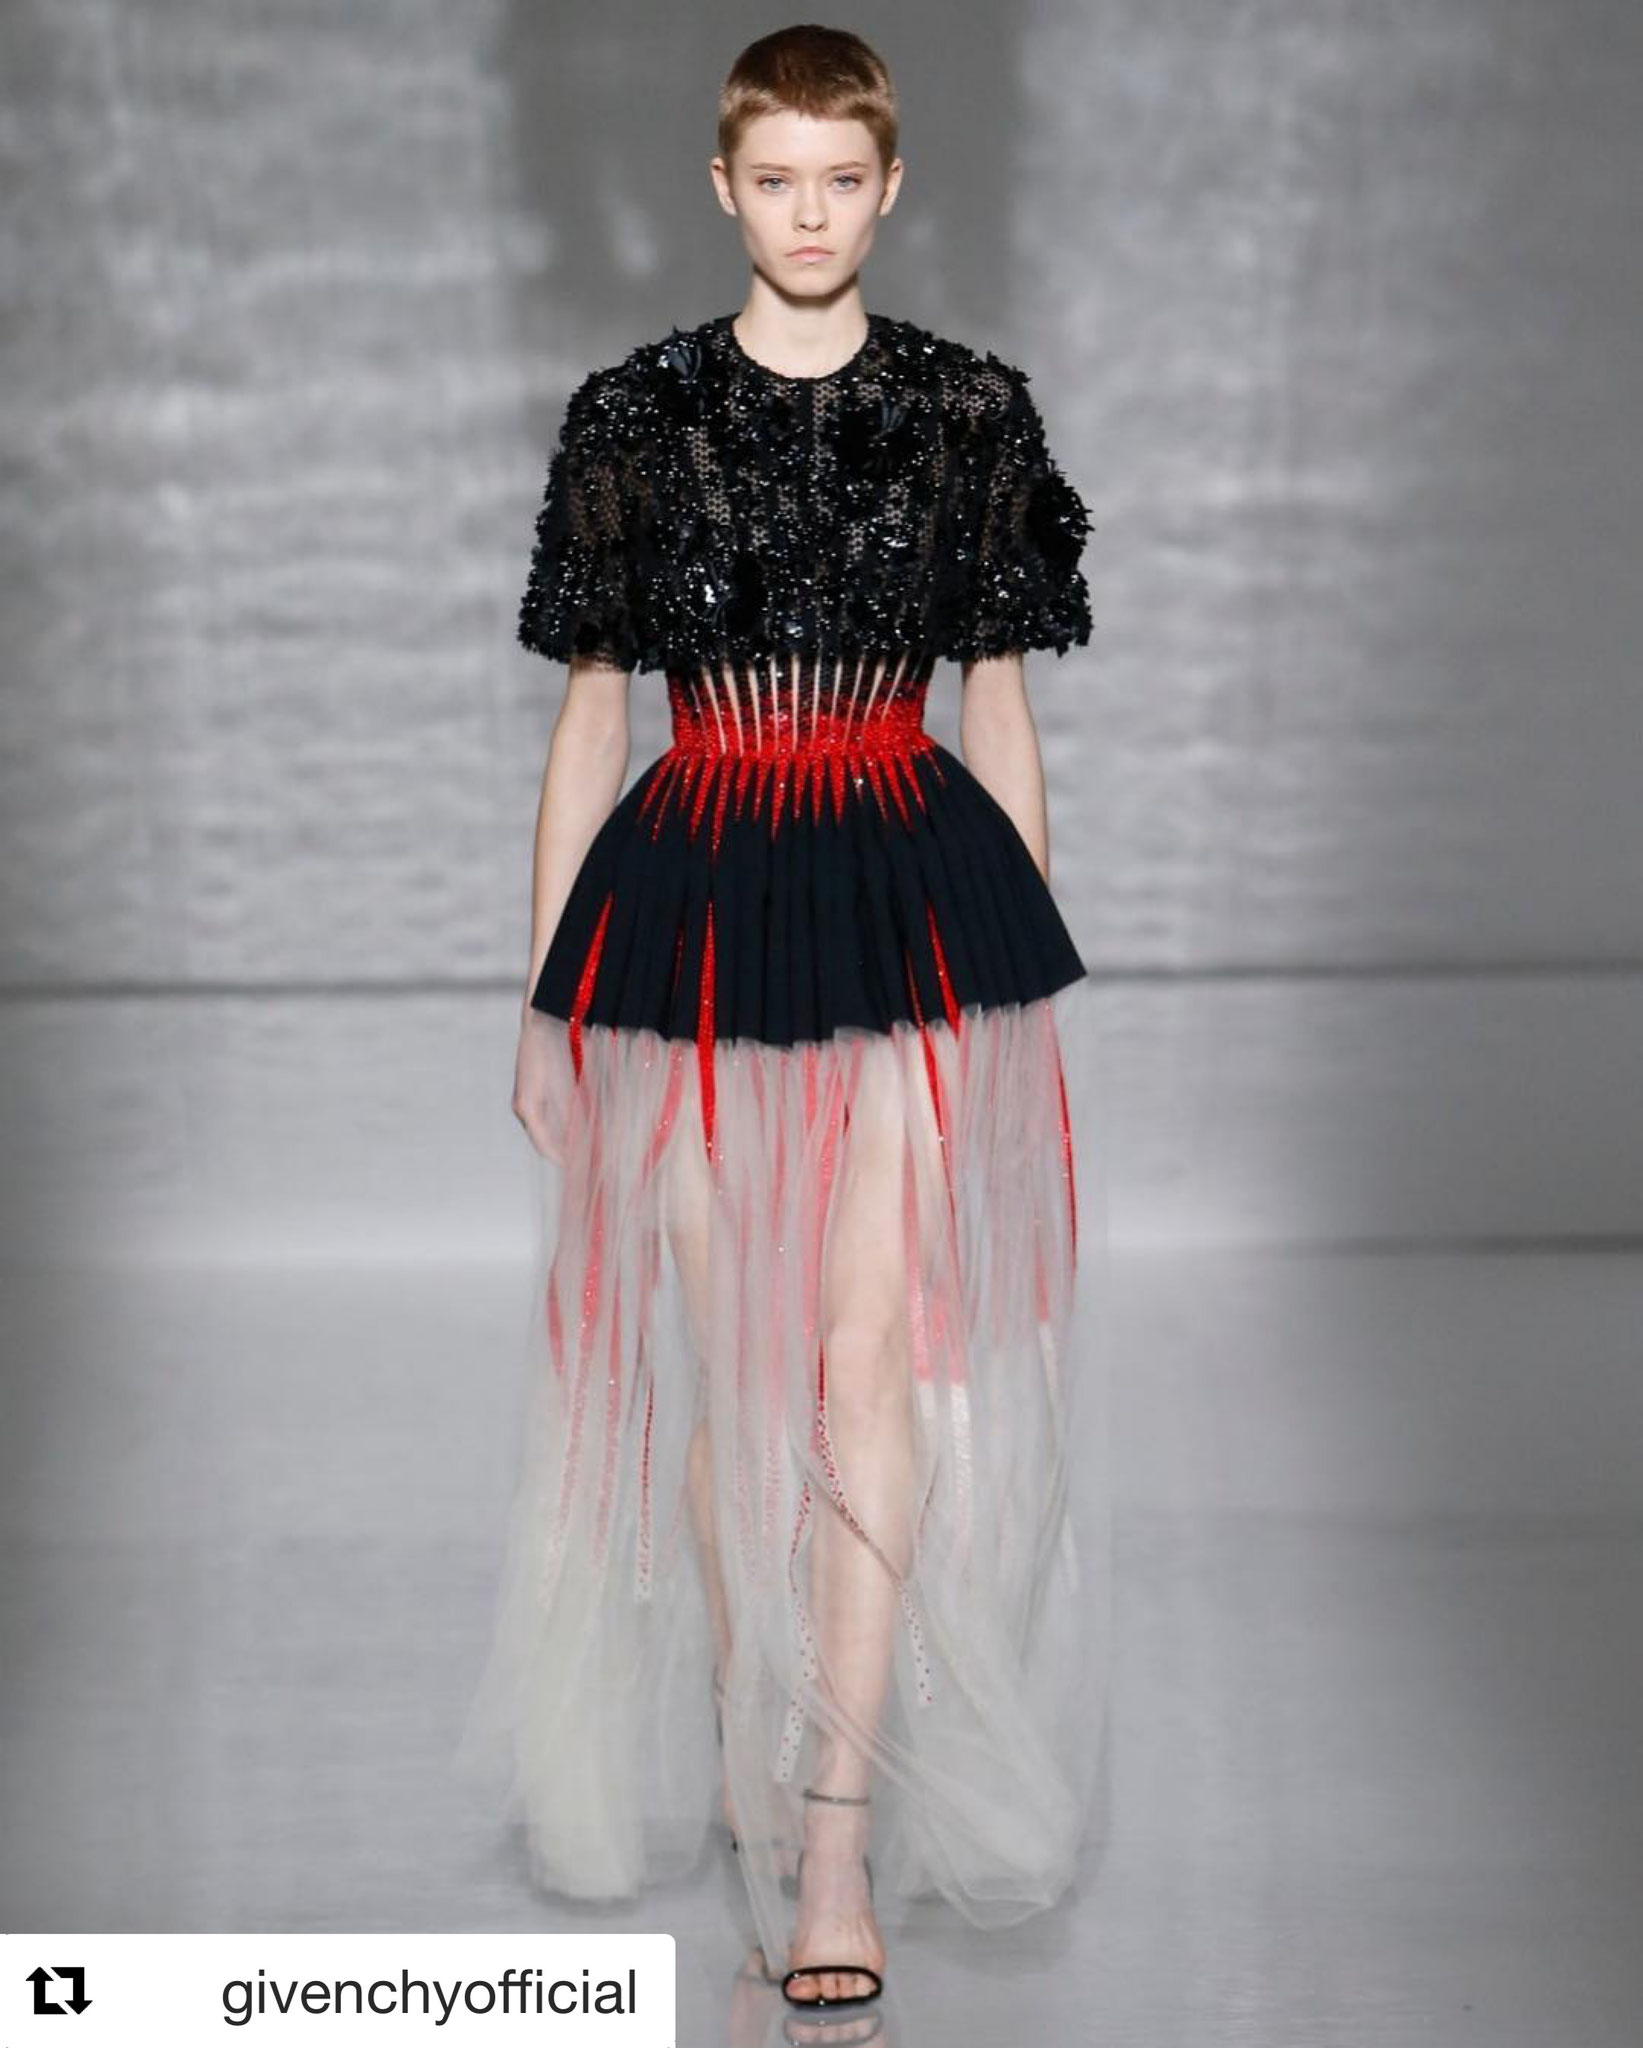 MAIKE INGA during HAUTE COUTURE Shows in PARIS for VALENTINO ...